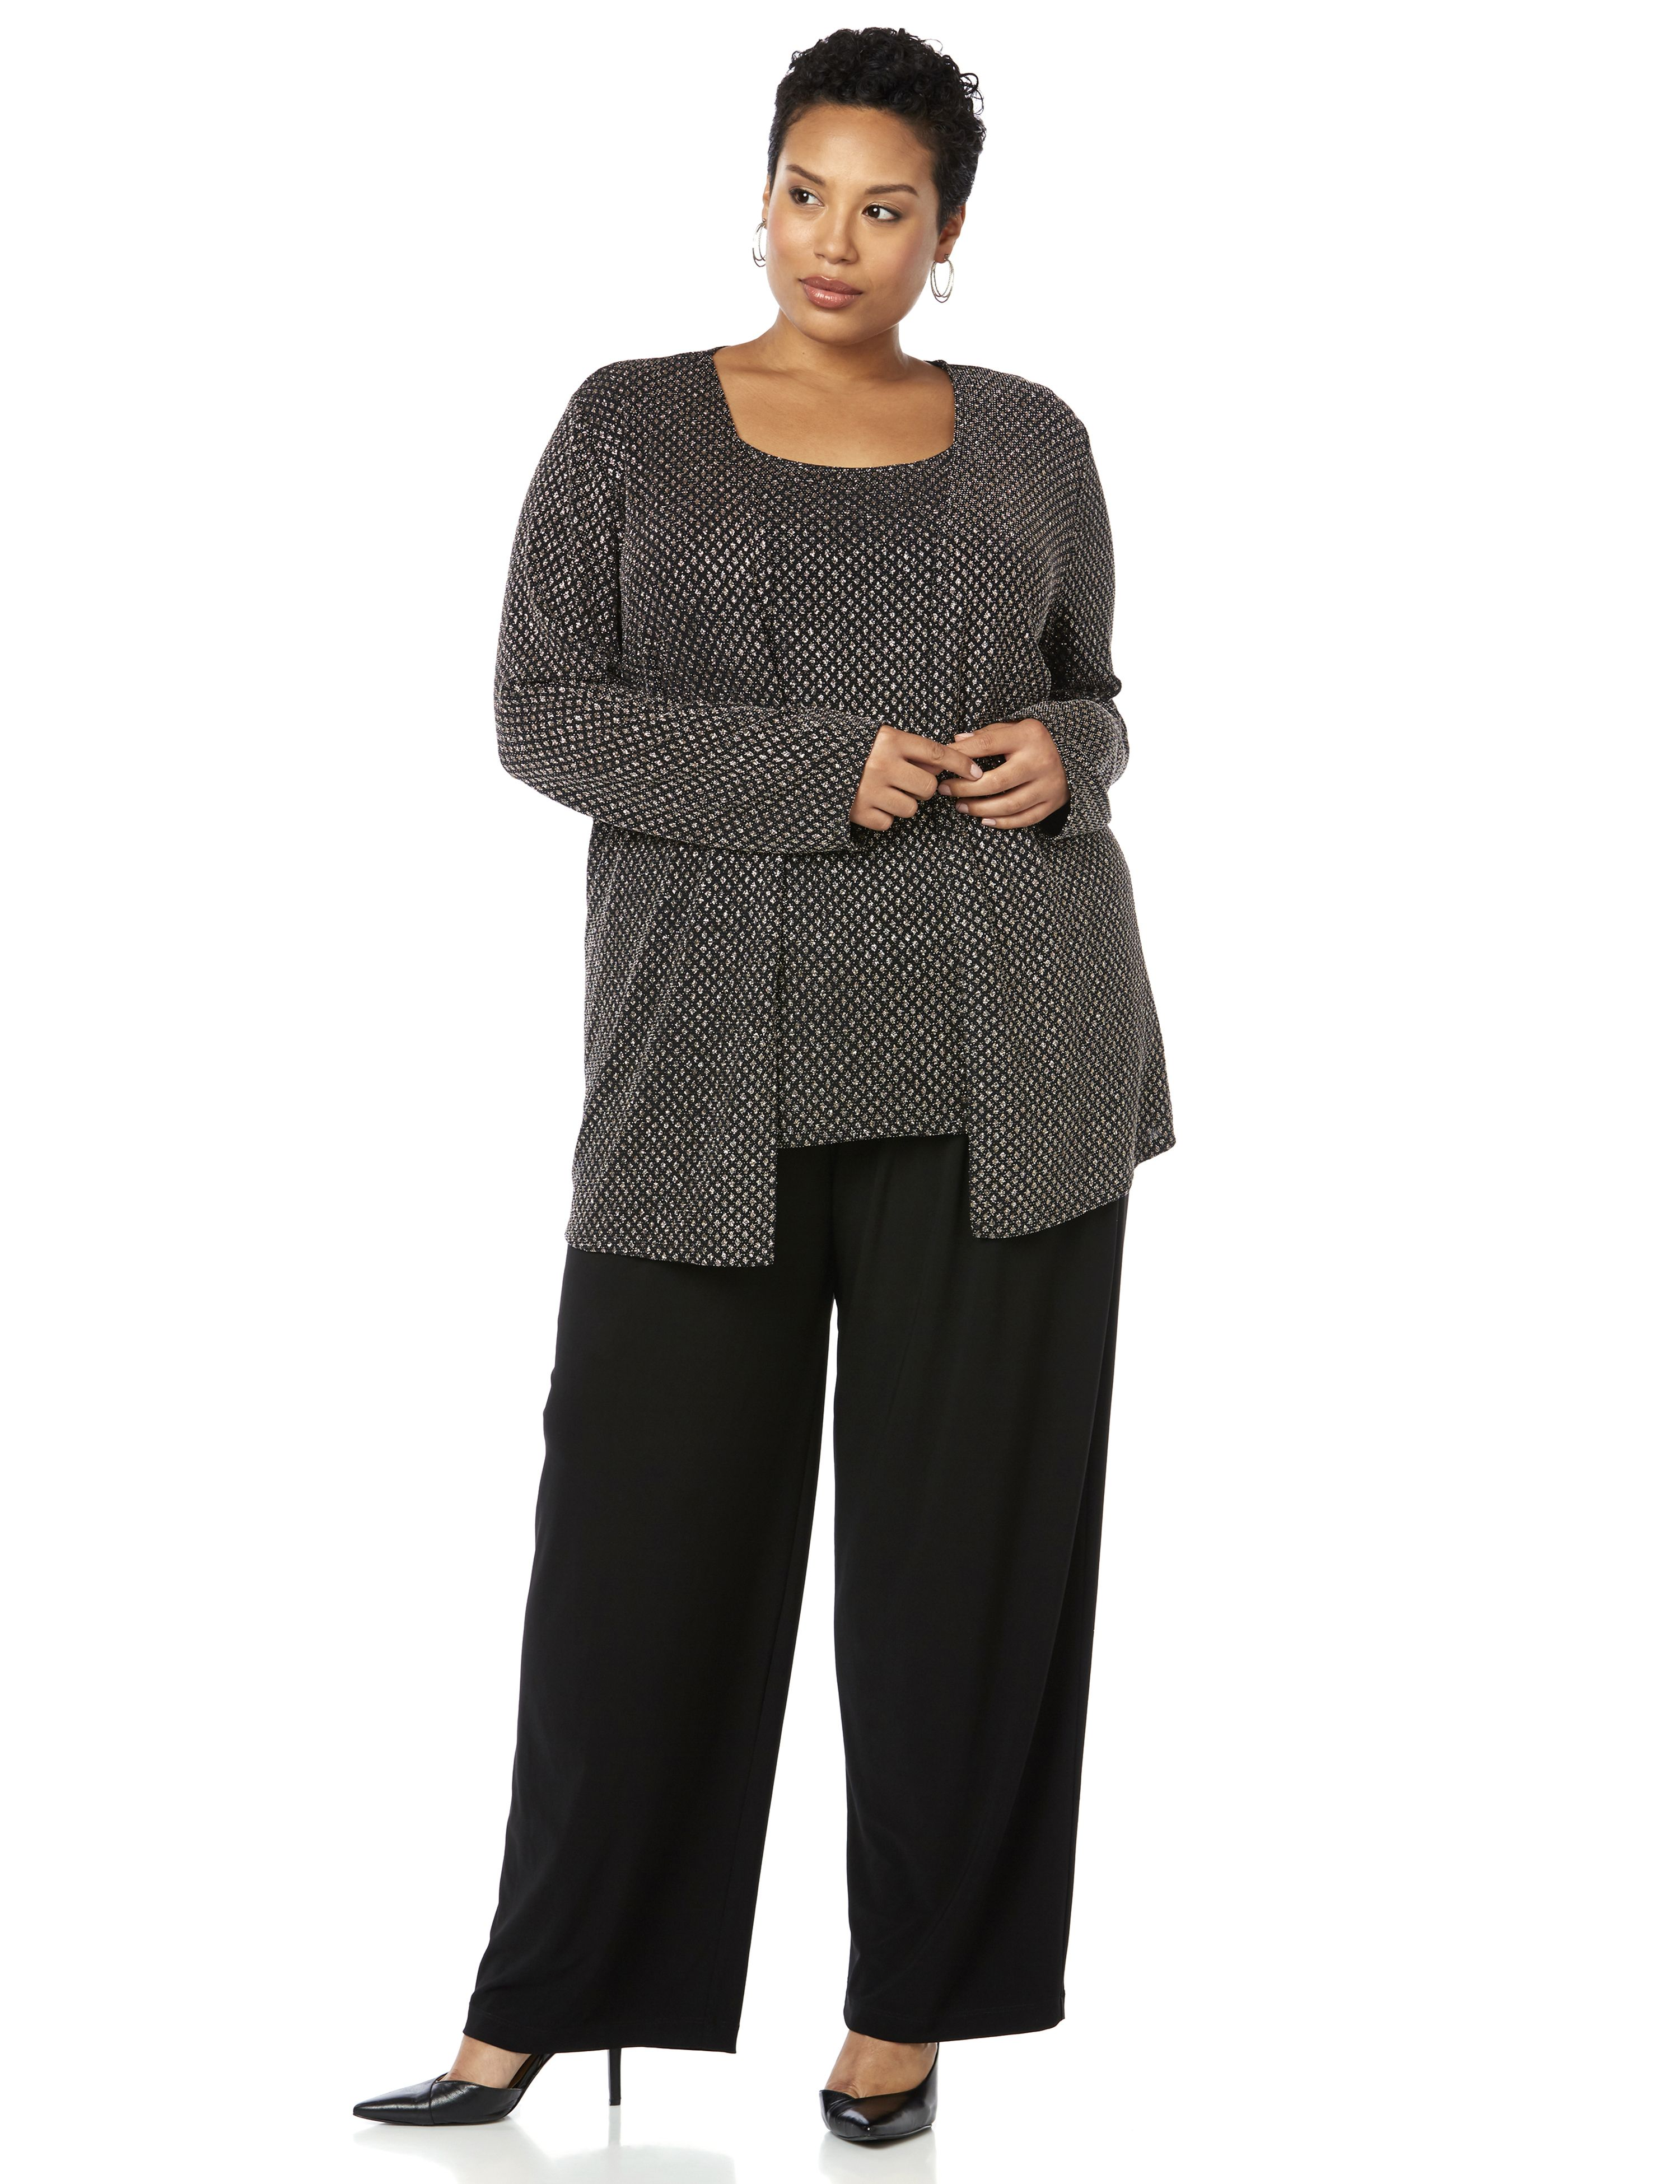 Showtime Pantsuit 1088465 Glitter Knit Pantsuit MP-300087850